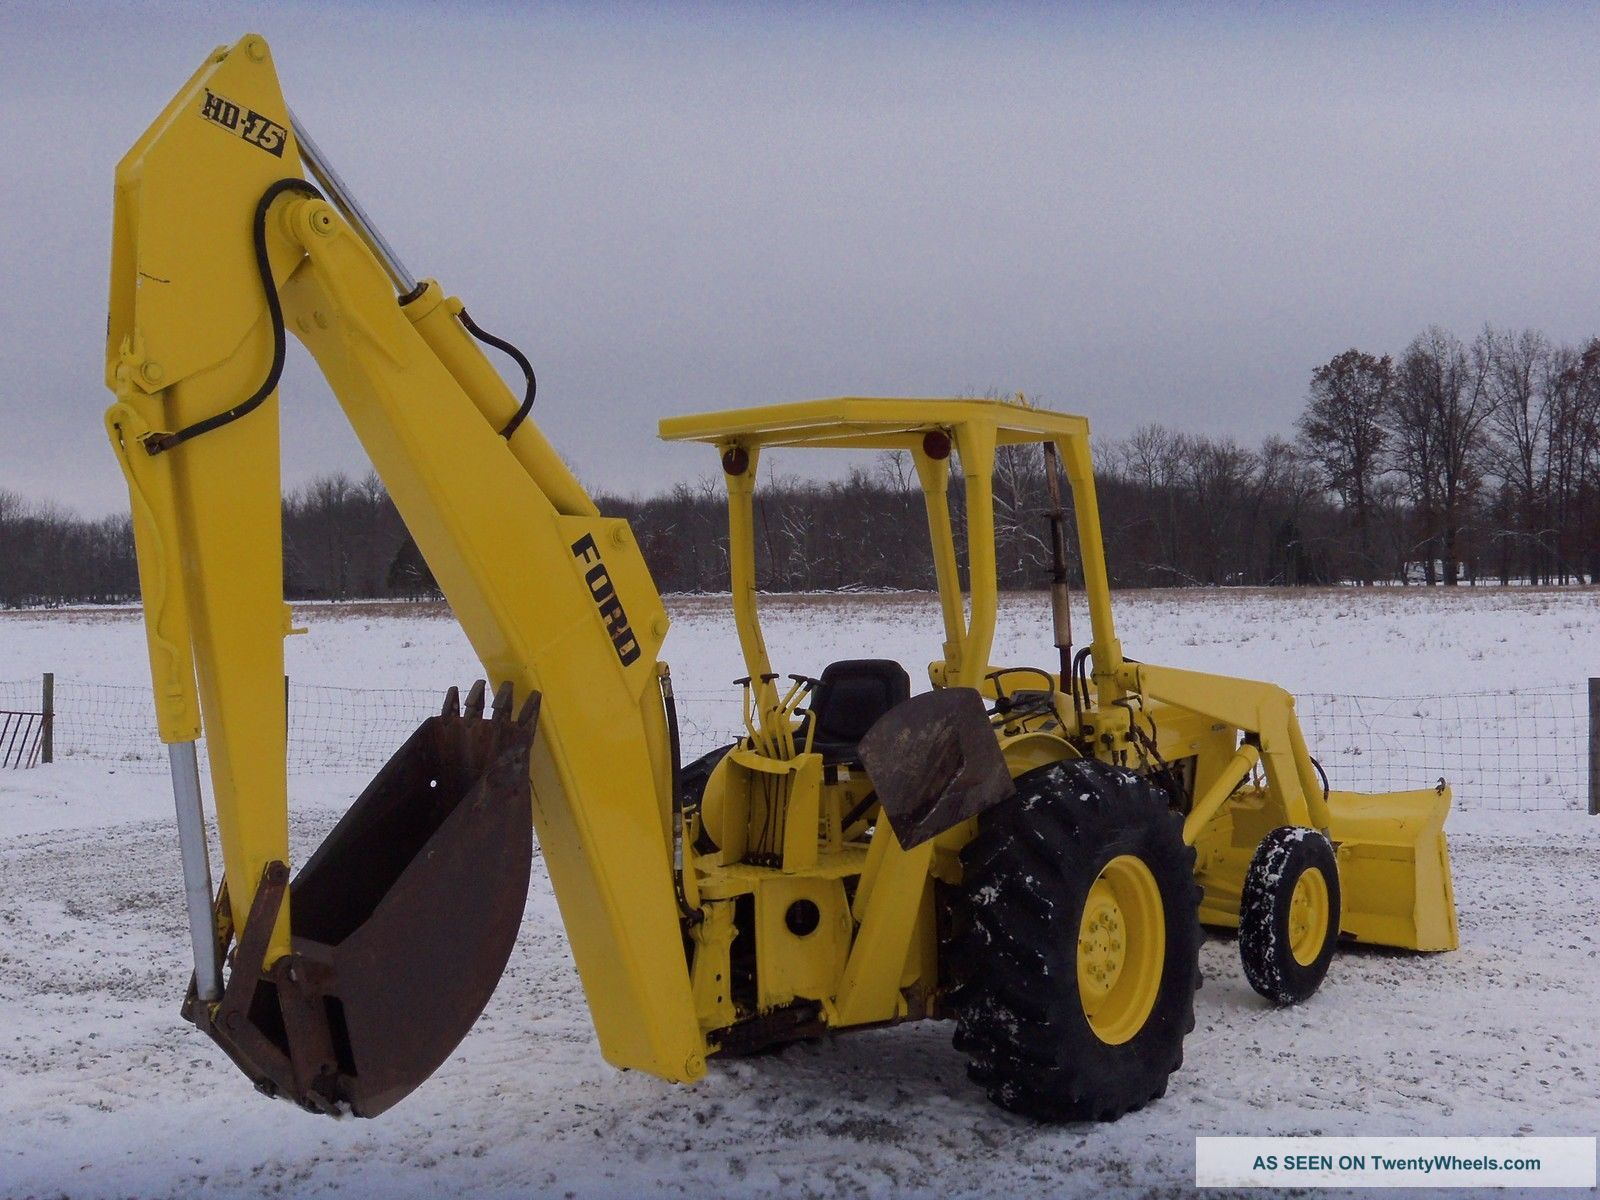 Ford 4500 Industrial Tractor Backhoe : Ford industrial loader